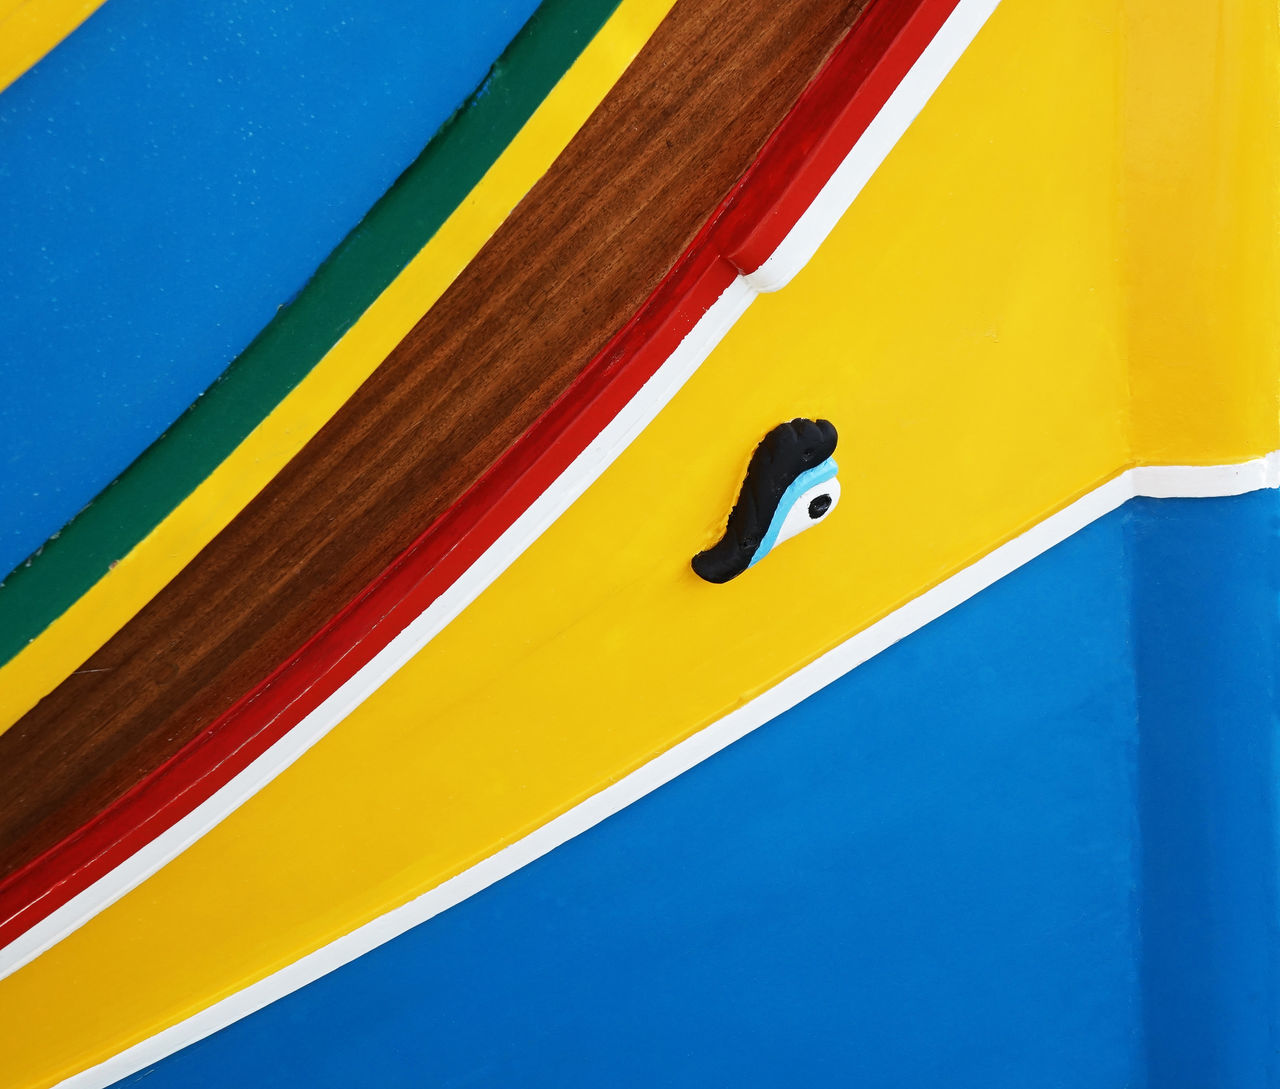 Abstract Photography Boat Boats Culture And Tradition Eye Fisherman Fishing Boat Luzzu Malta Marsaxlokk Medditerenean Osiris Sea Ship Square Traditional Yellow